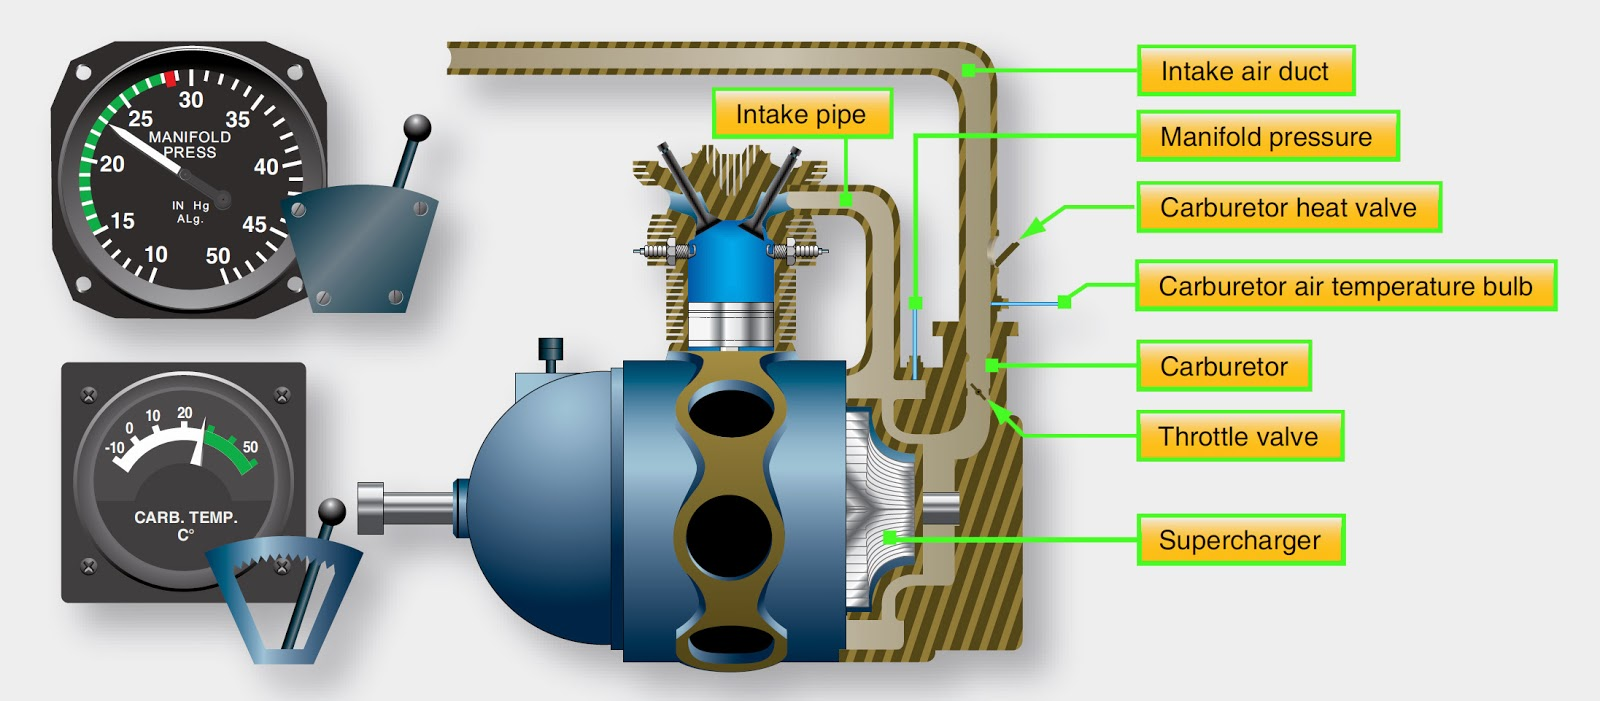 Internally Driven Supercharger Induction System on Aircraft Carburetor Diagram